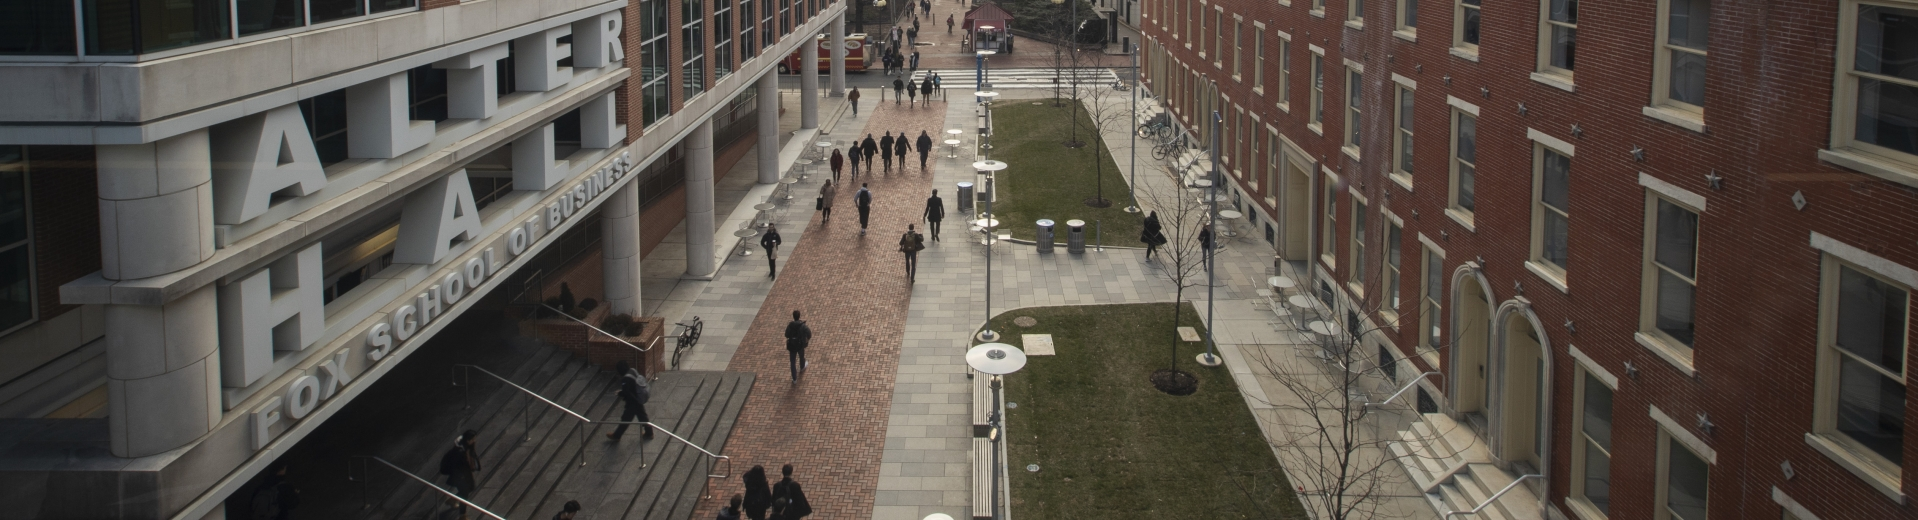 View of Alter Hall and Polett Walk at Temple University Main Campus.